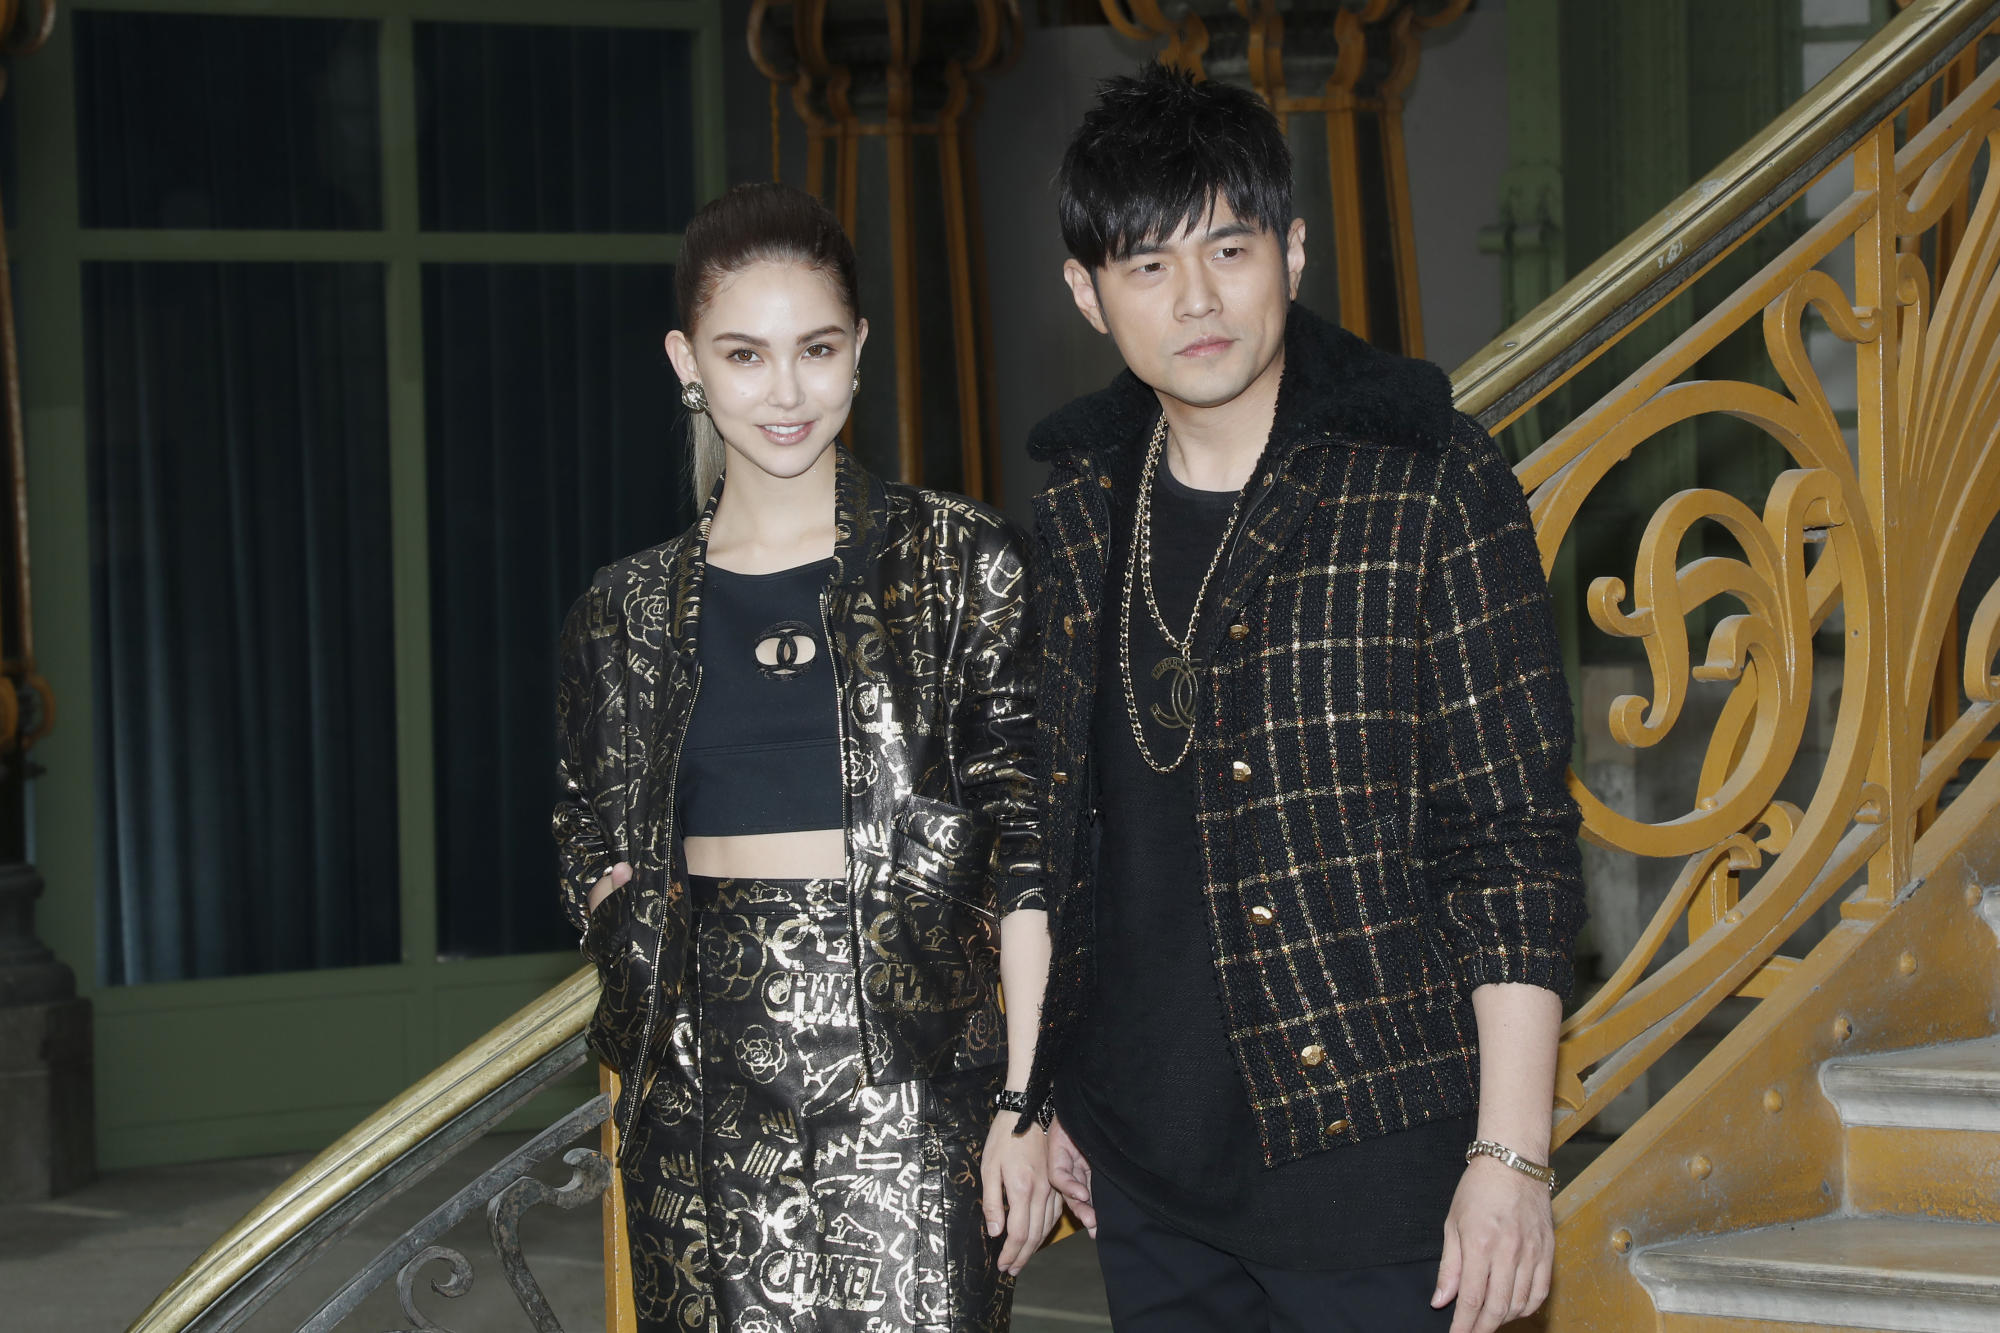 Jay Chou posts photos of daughter Hathaway drawing, attracting over 134,000 likes - Yahoo! Voices